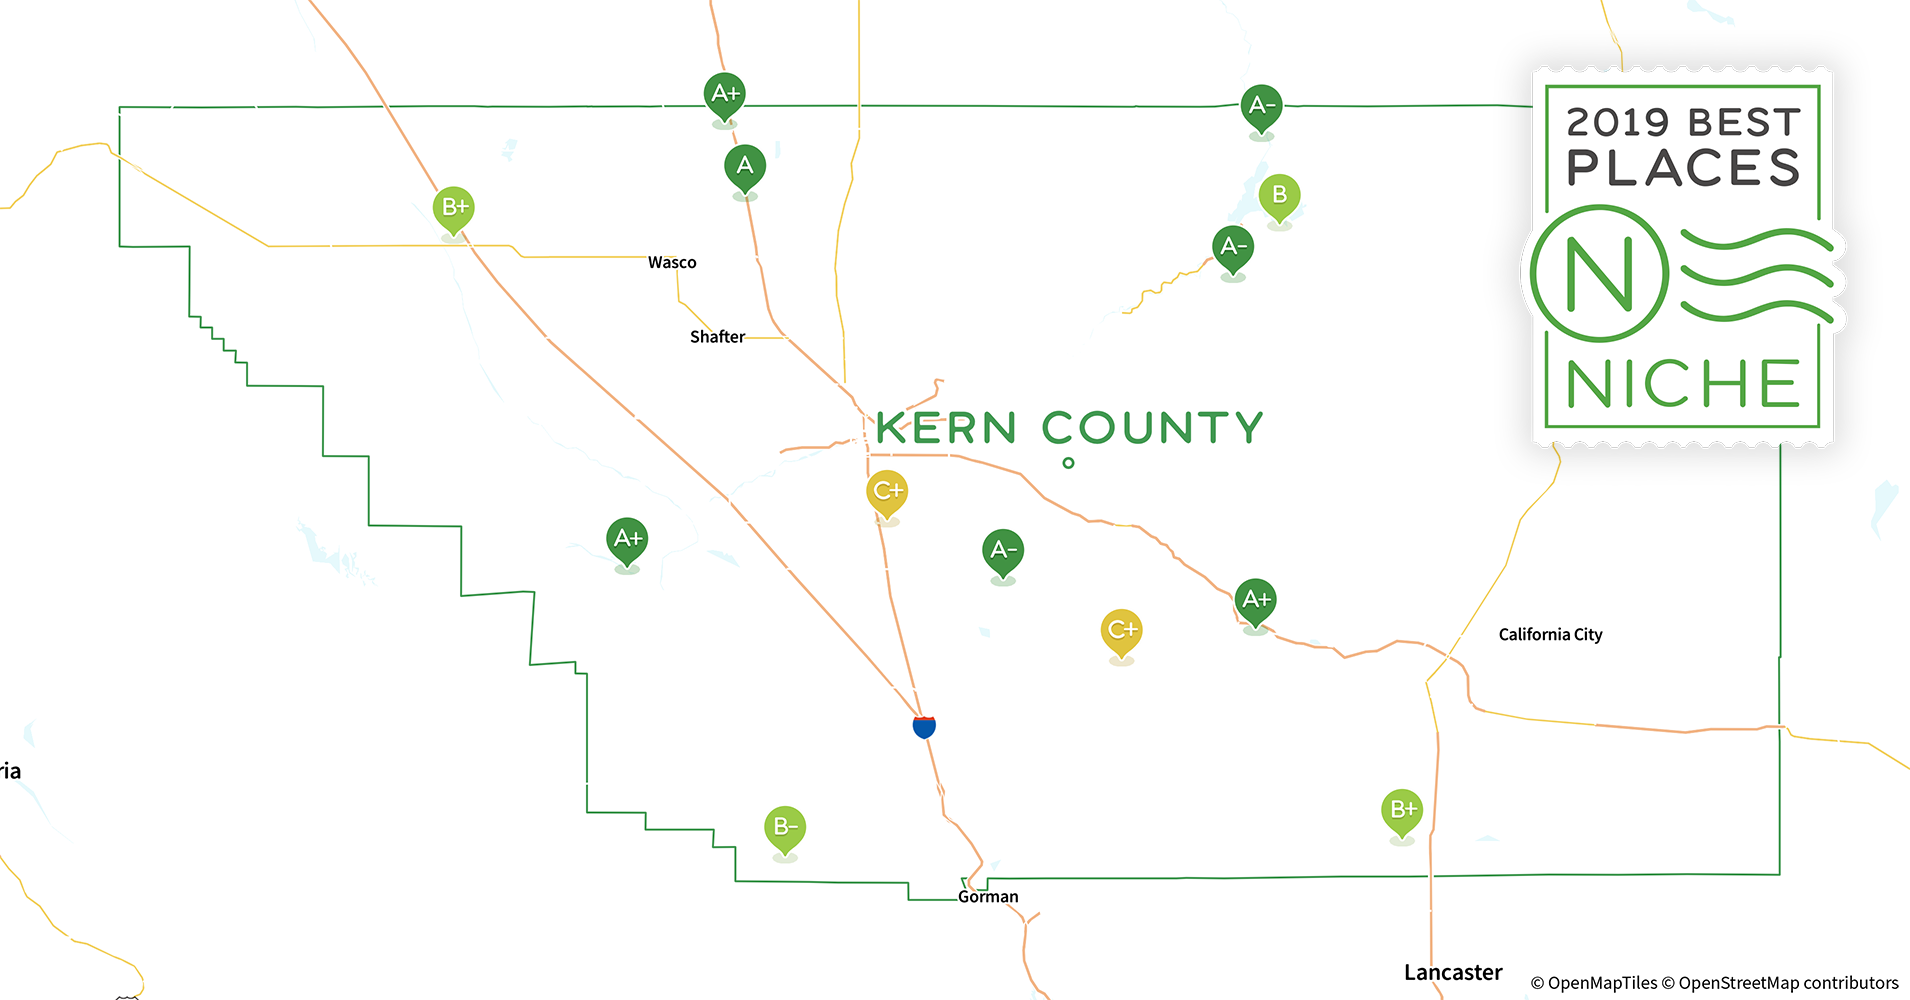 2019 Best Places to Live in Kern County, CA - Niche Kern County Section Map Of California on detailed map of kern county california, topographic regions of california, lines maps of california, gemstone mine map southern california, map of madera county california,